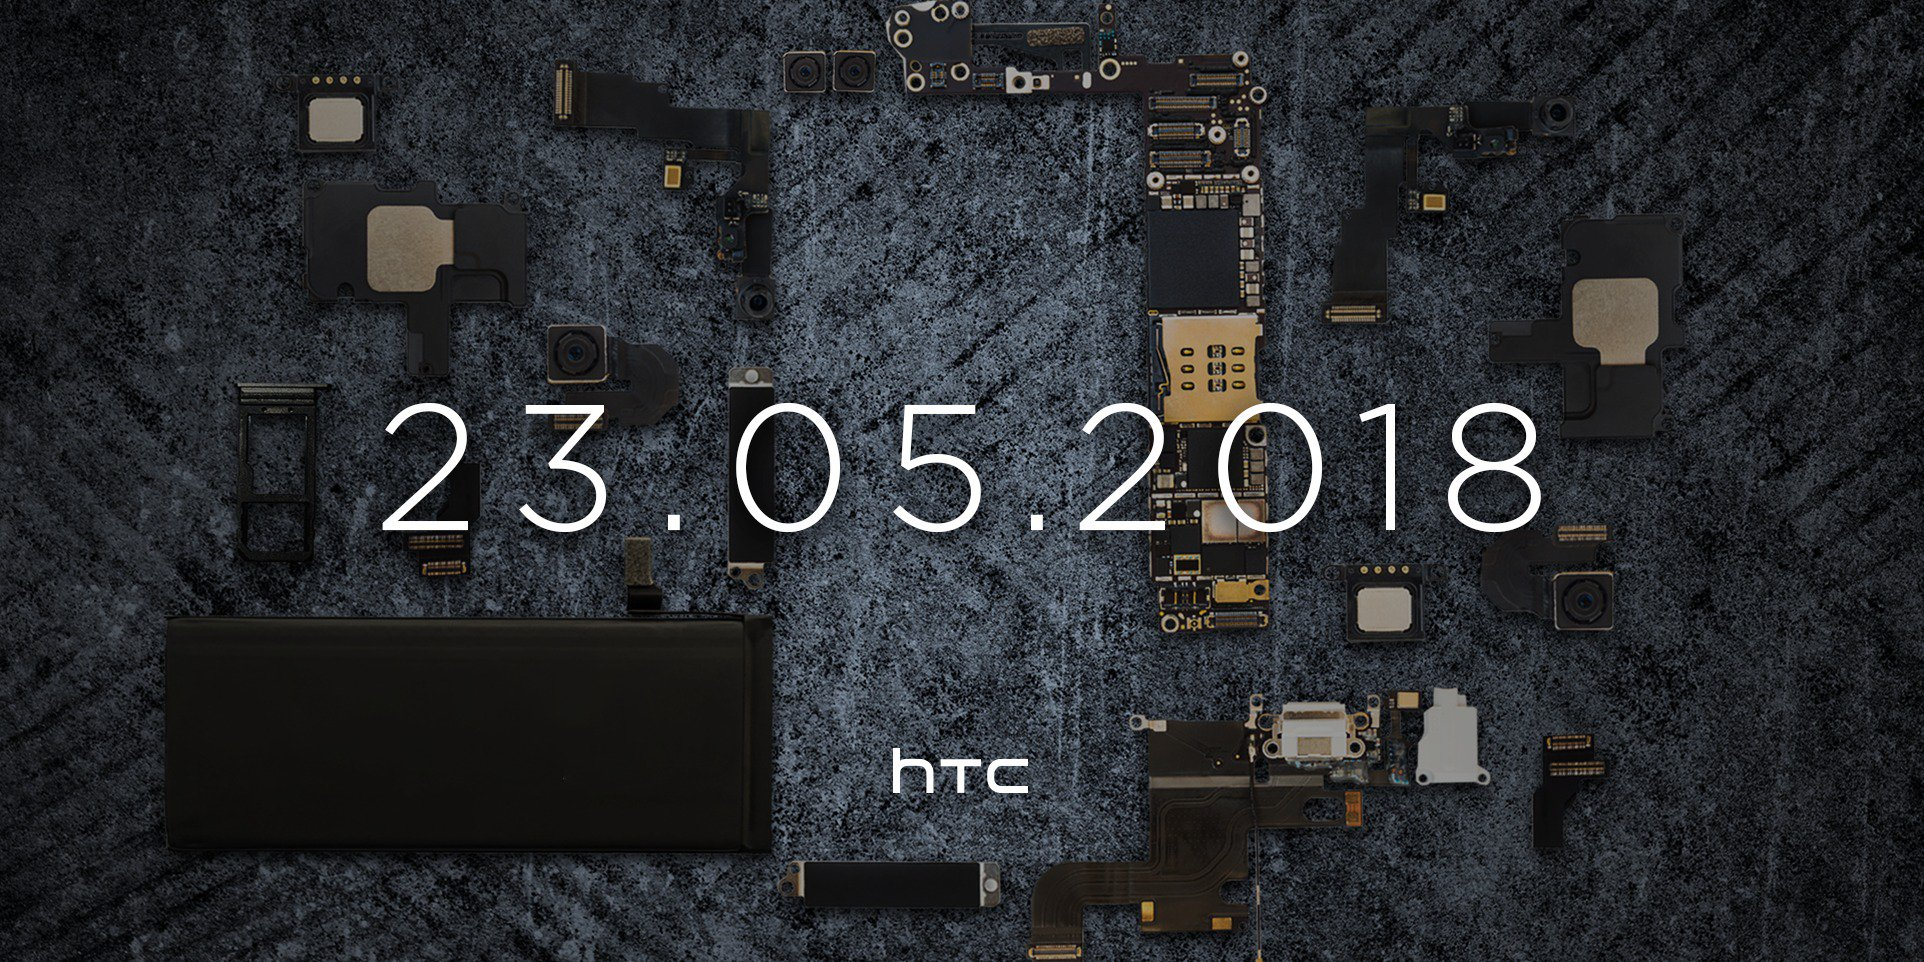 HTC U12 Plus is officially launching on May 23 with Four Cameras 1